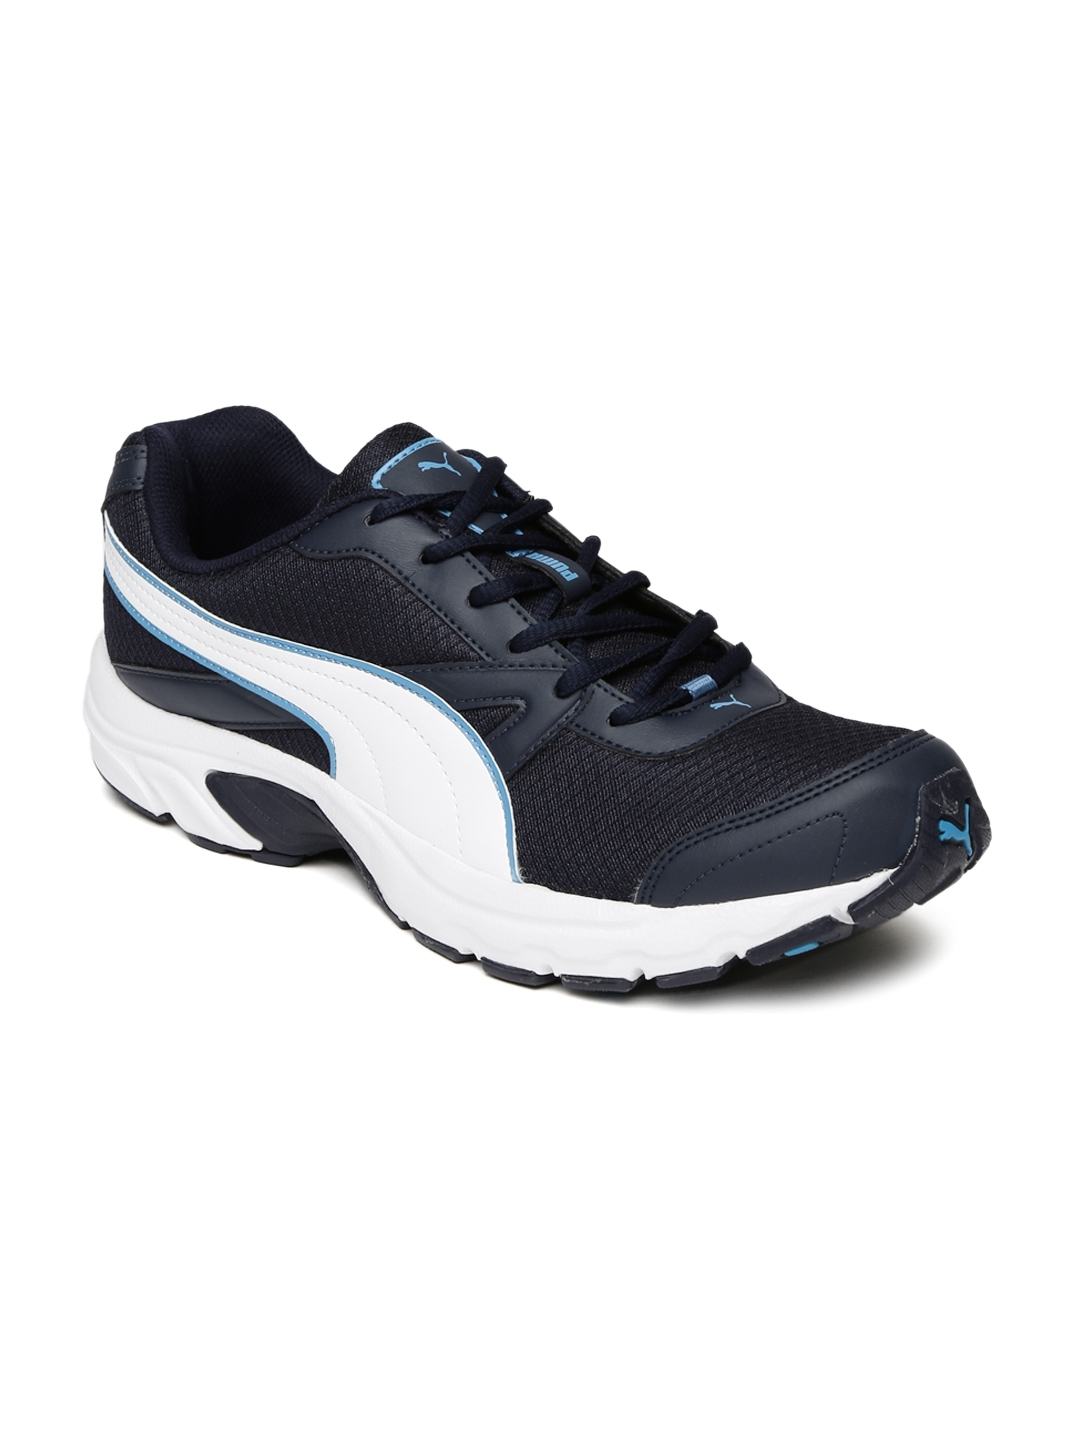 puma new shoes online india